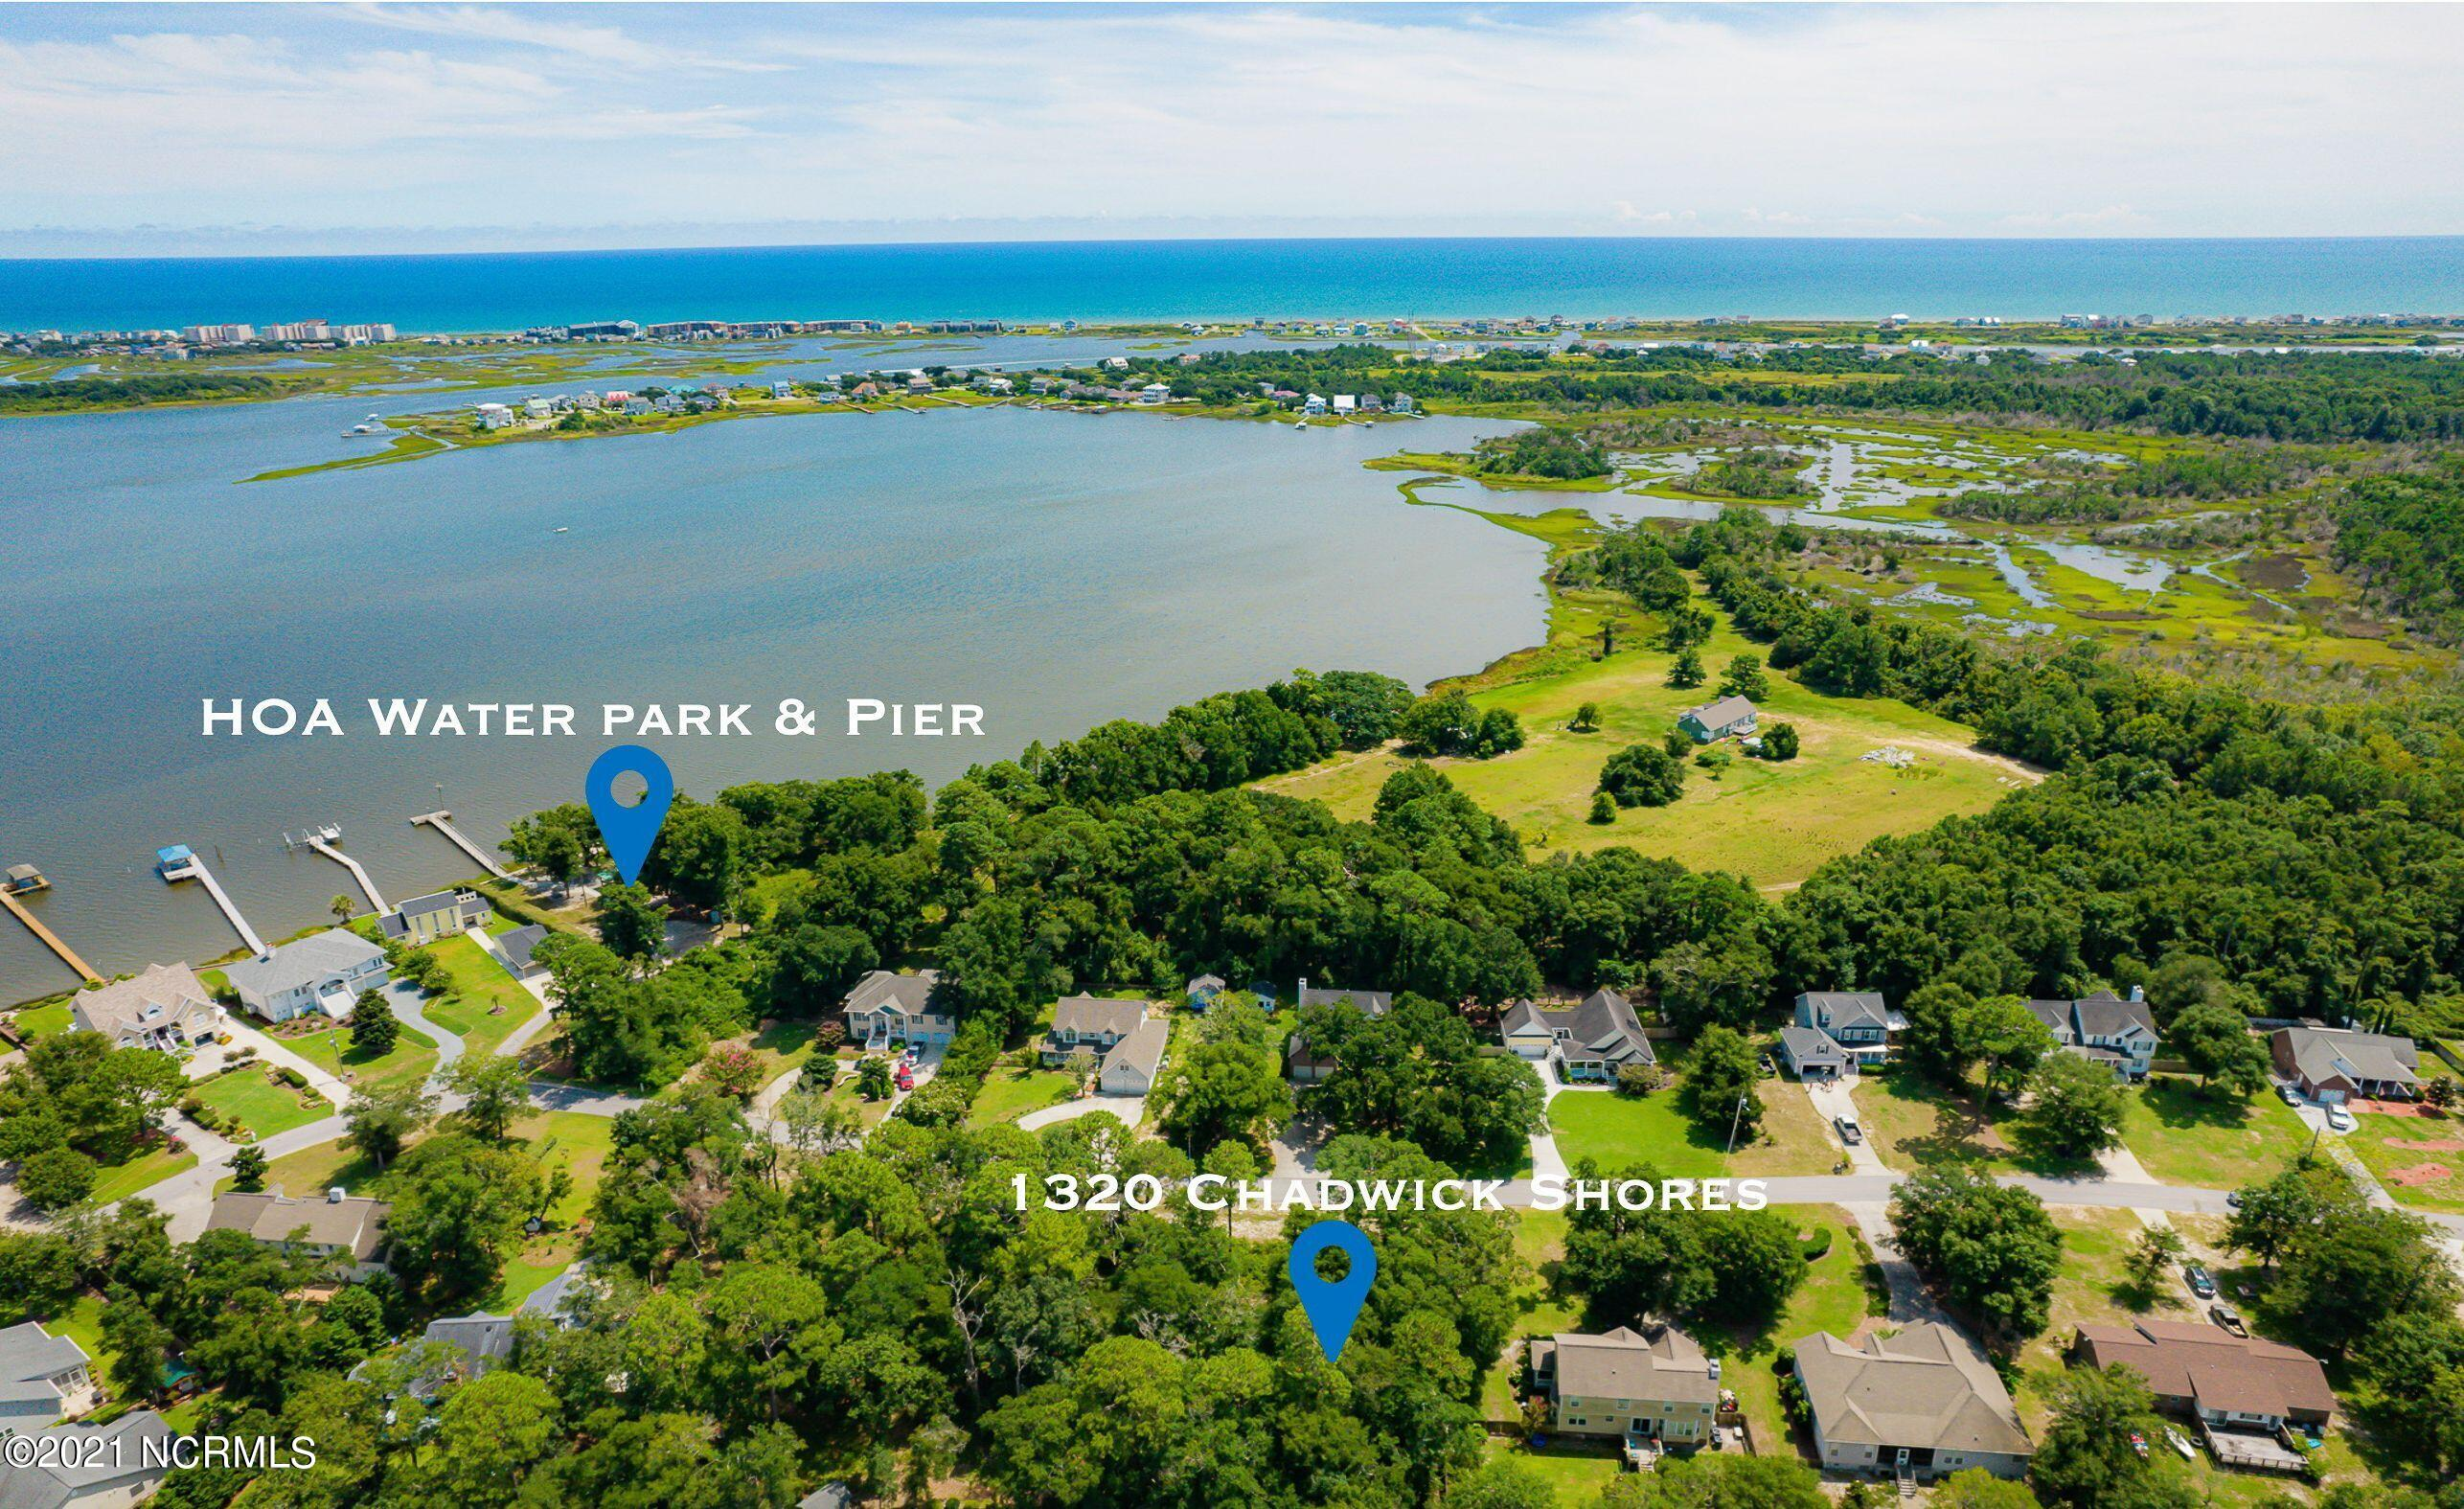 Looking to build your dream home in a wonderful waterfront gated community?  Look no further.  This perfect lot is just steps away from the community dock and park.  This wonderful neighborhood is just minutes from Stones Bay, the back gate of Camp Lejune and Topsail Island beaches.  Don't miss your chance to own this land!!  Call today!